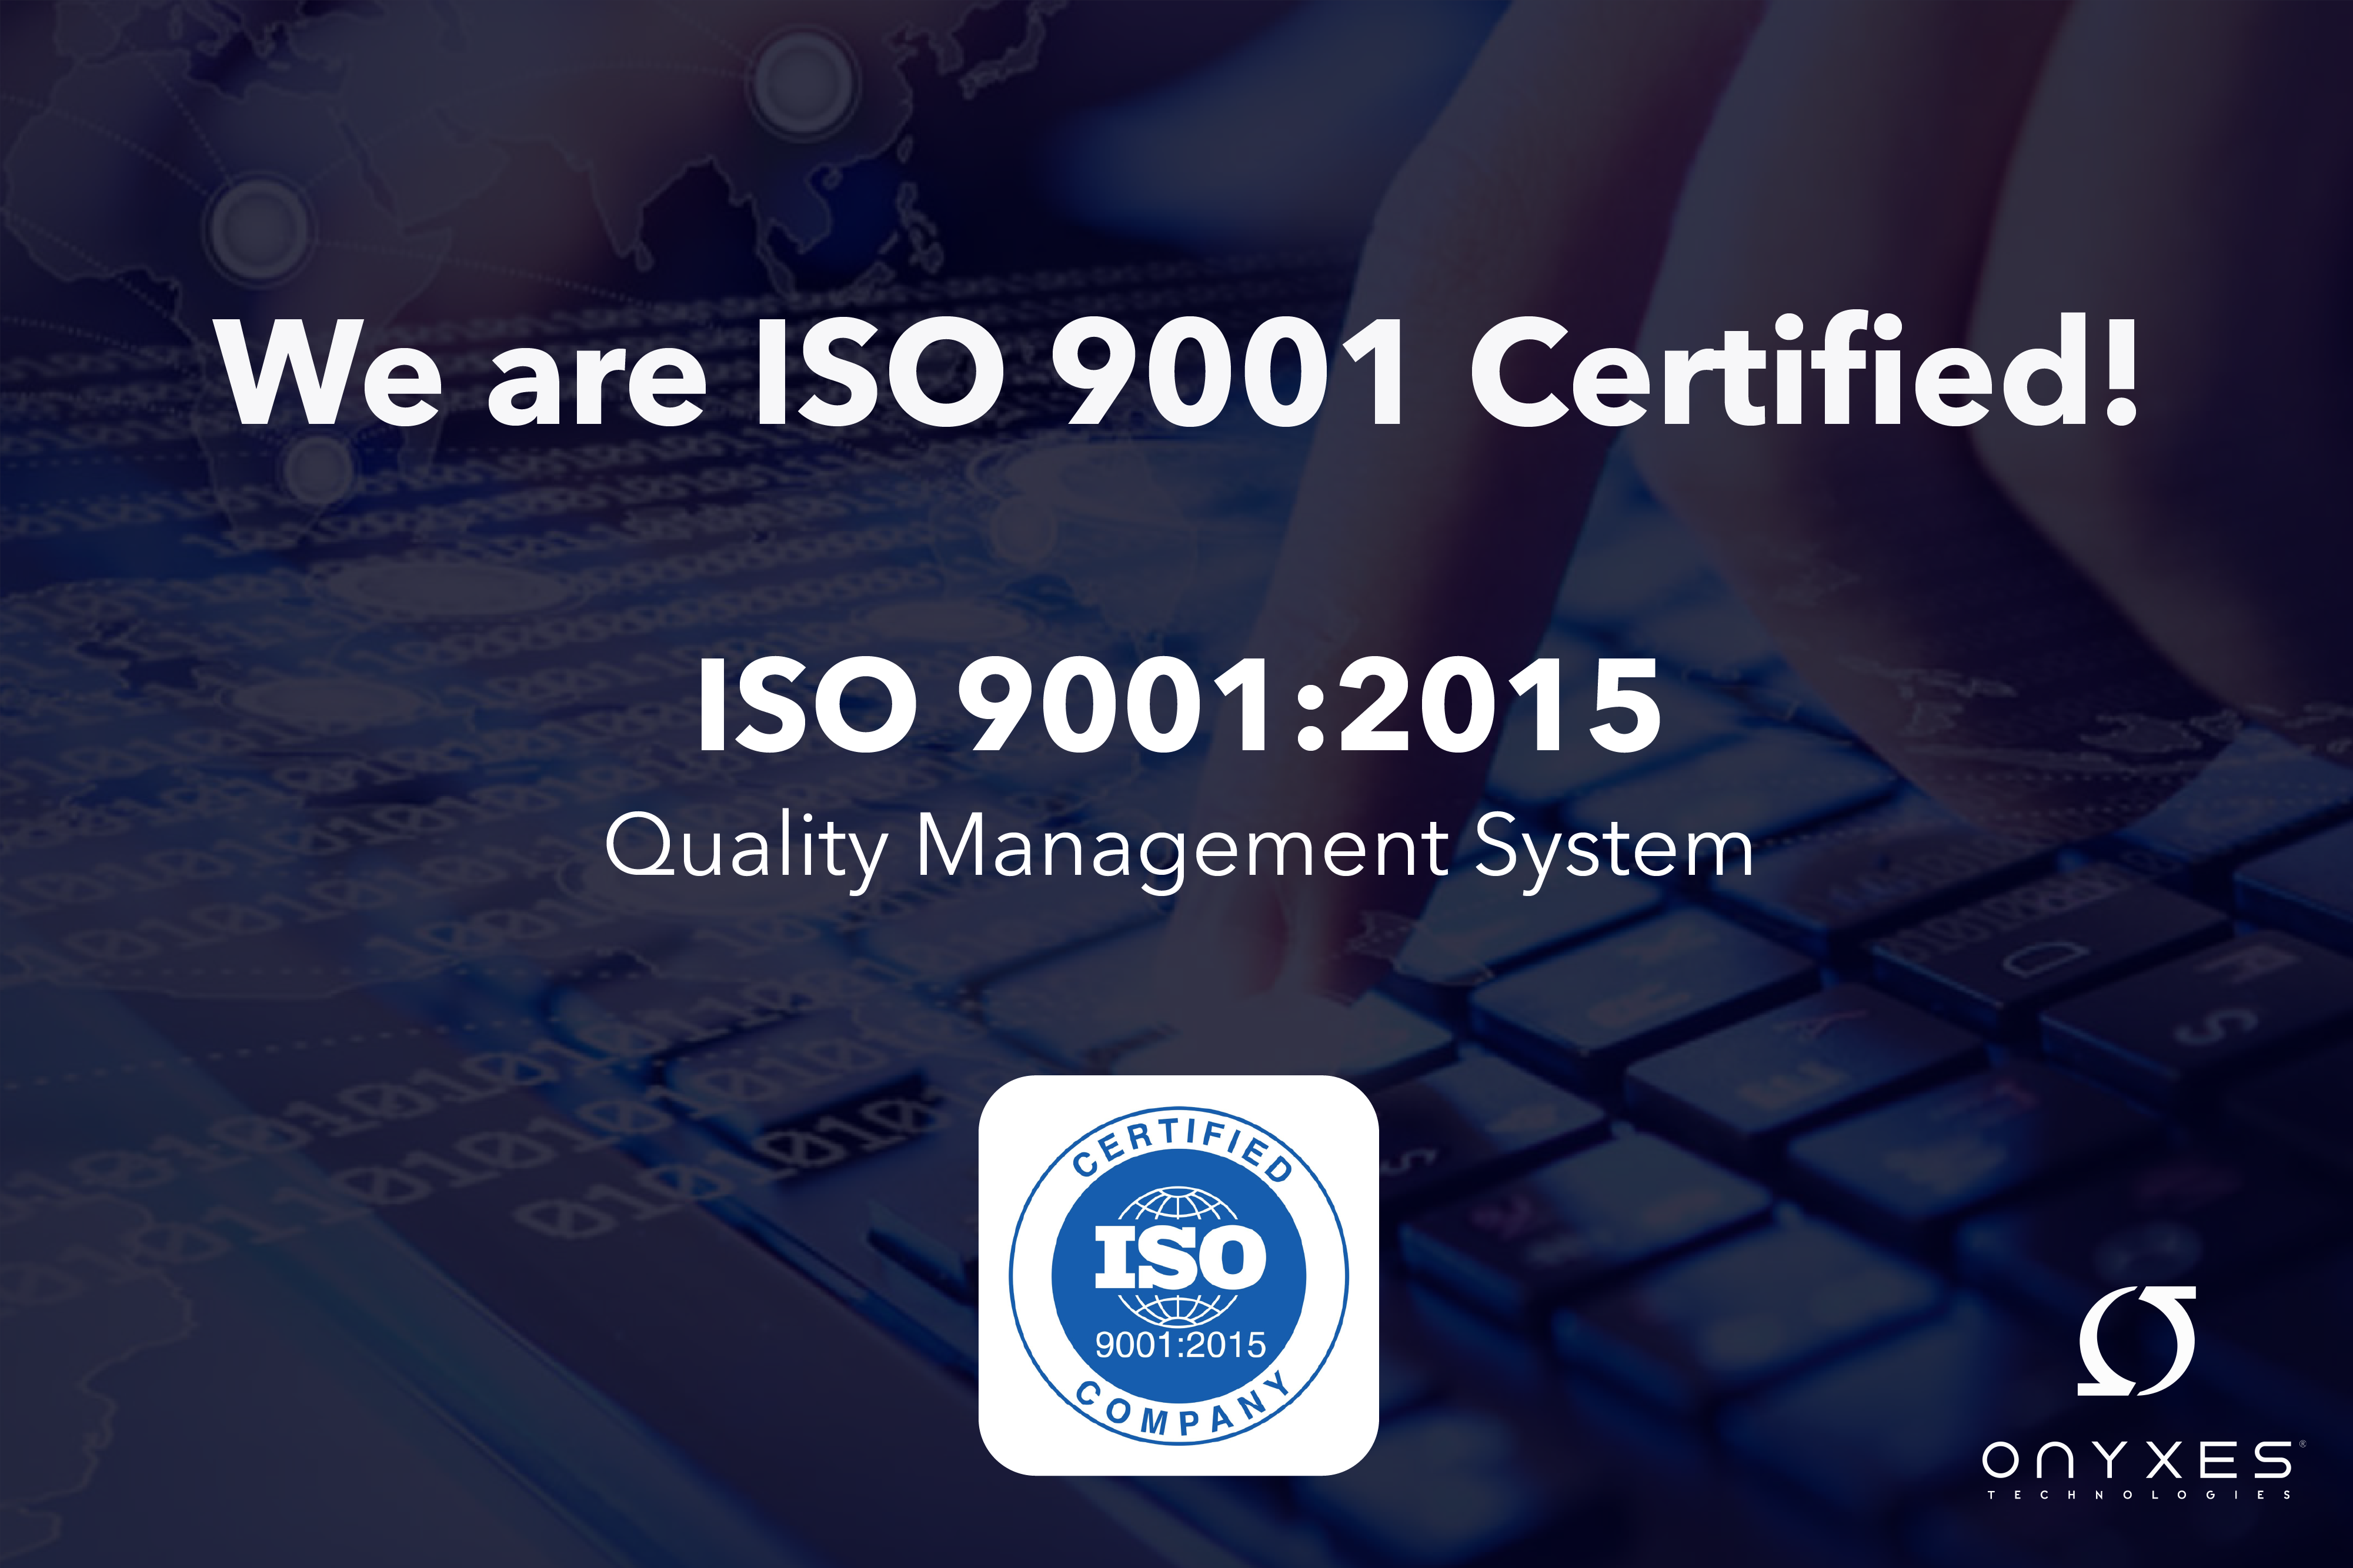 ISO 9001 certifcation cover